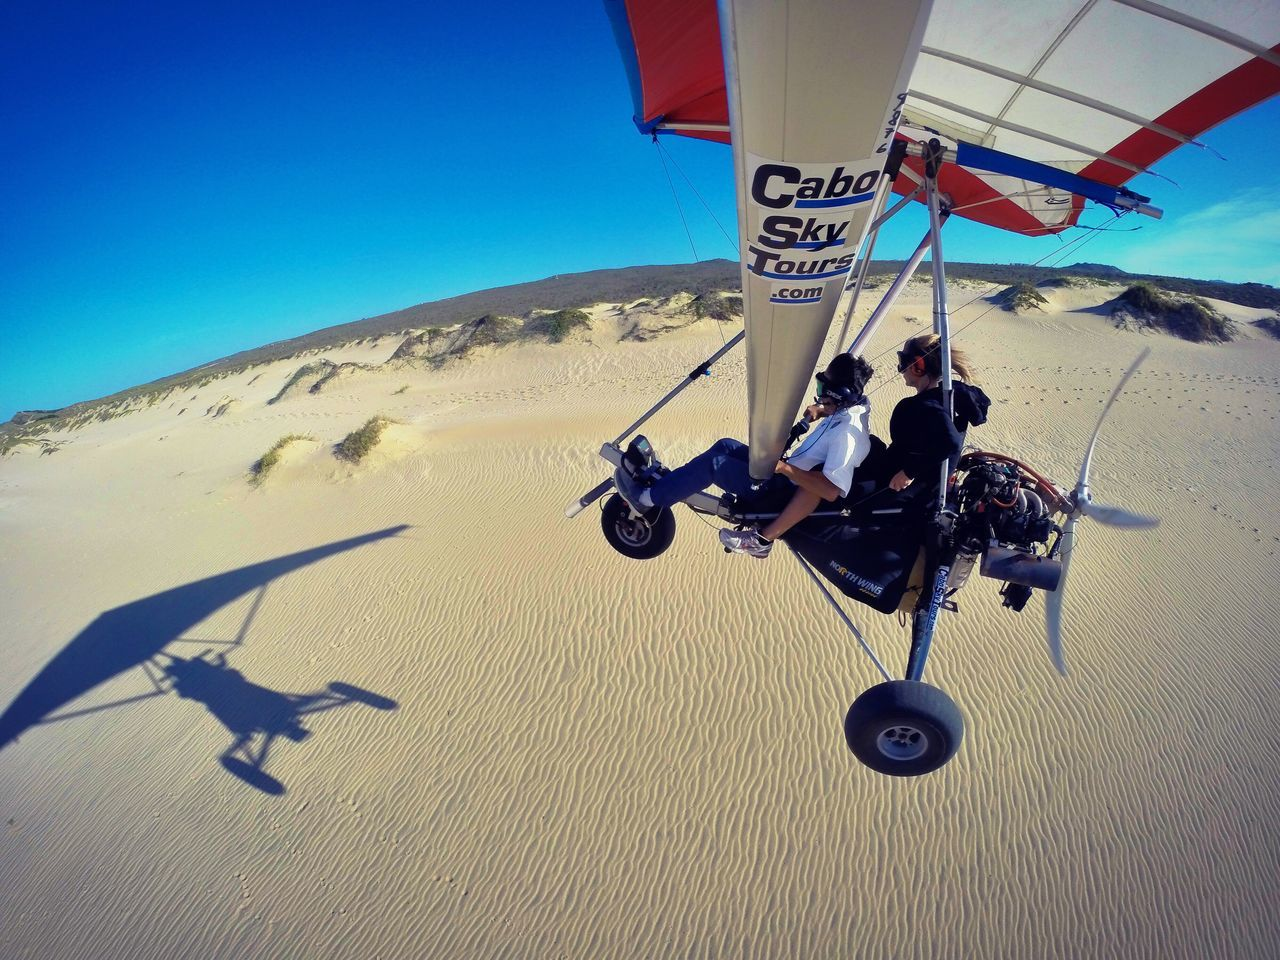 Sunlight Shadow Sand Real People Two People Extreme Sports Outdoors Transportation Day Adventure Arid Climate Vacations Desert Nature Landscape Togetherness Sky Travel Determination Adrenaline Adrenaline Junkie Fly Away Skydiving Scenics LosCabos